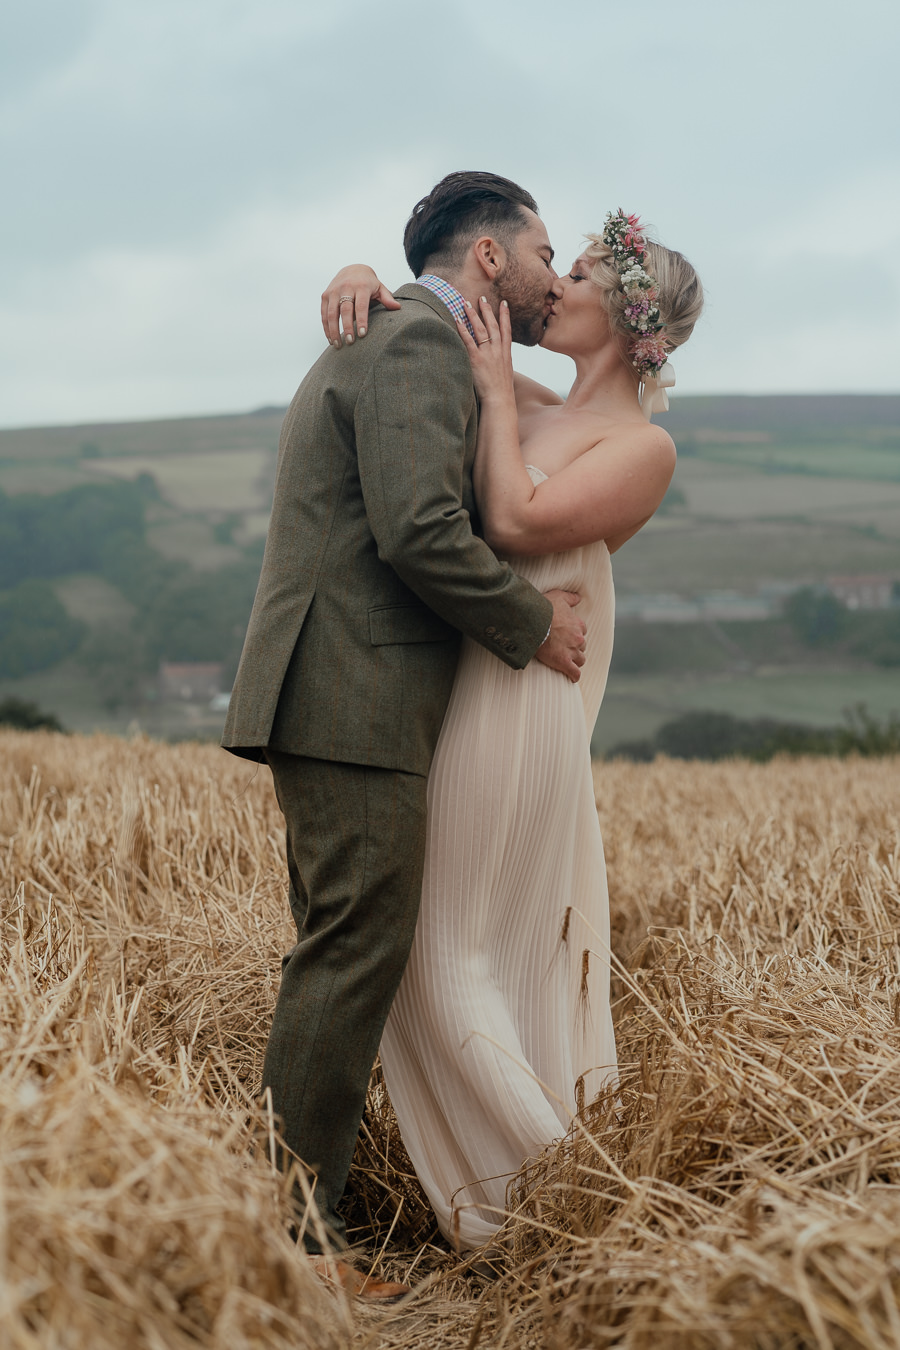 Rural English wedding style at Danby Castle, photo credit Rosanna Lilly Photography (4)